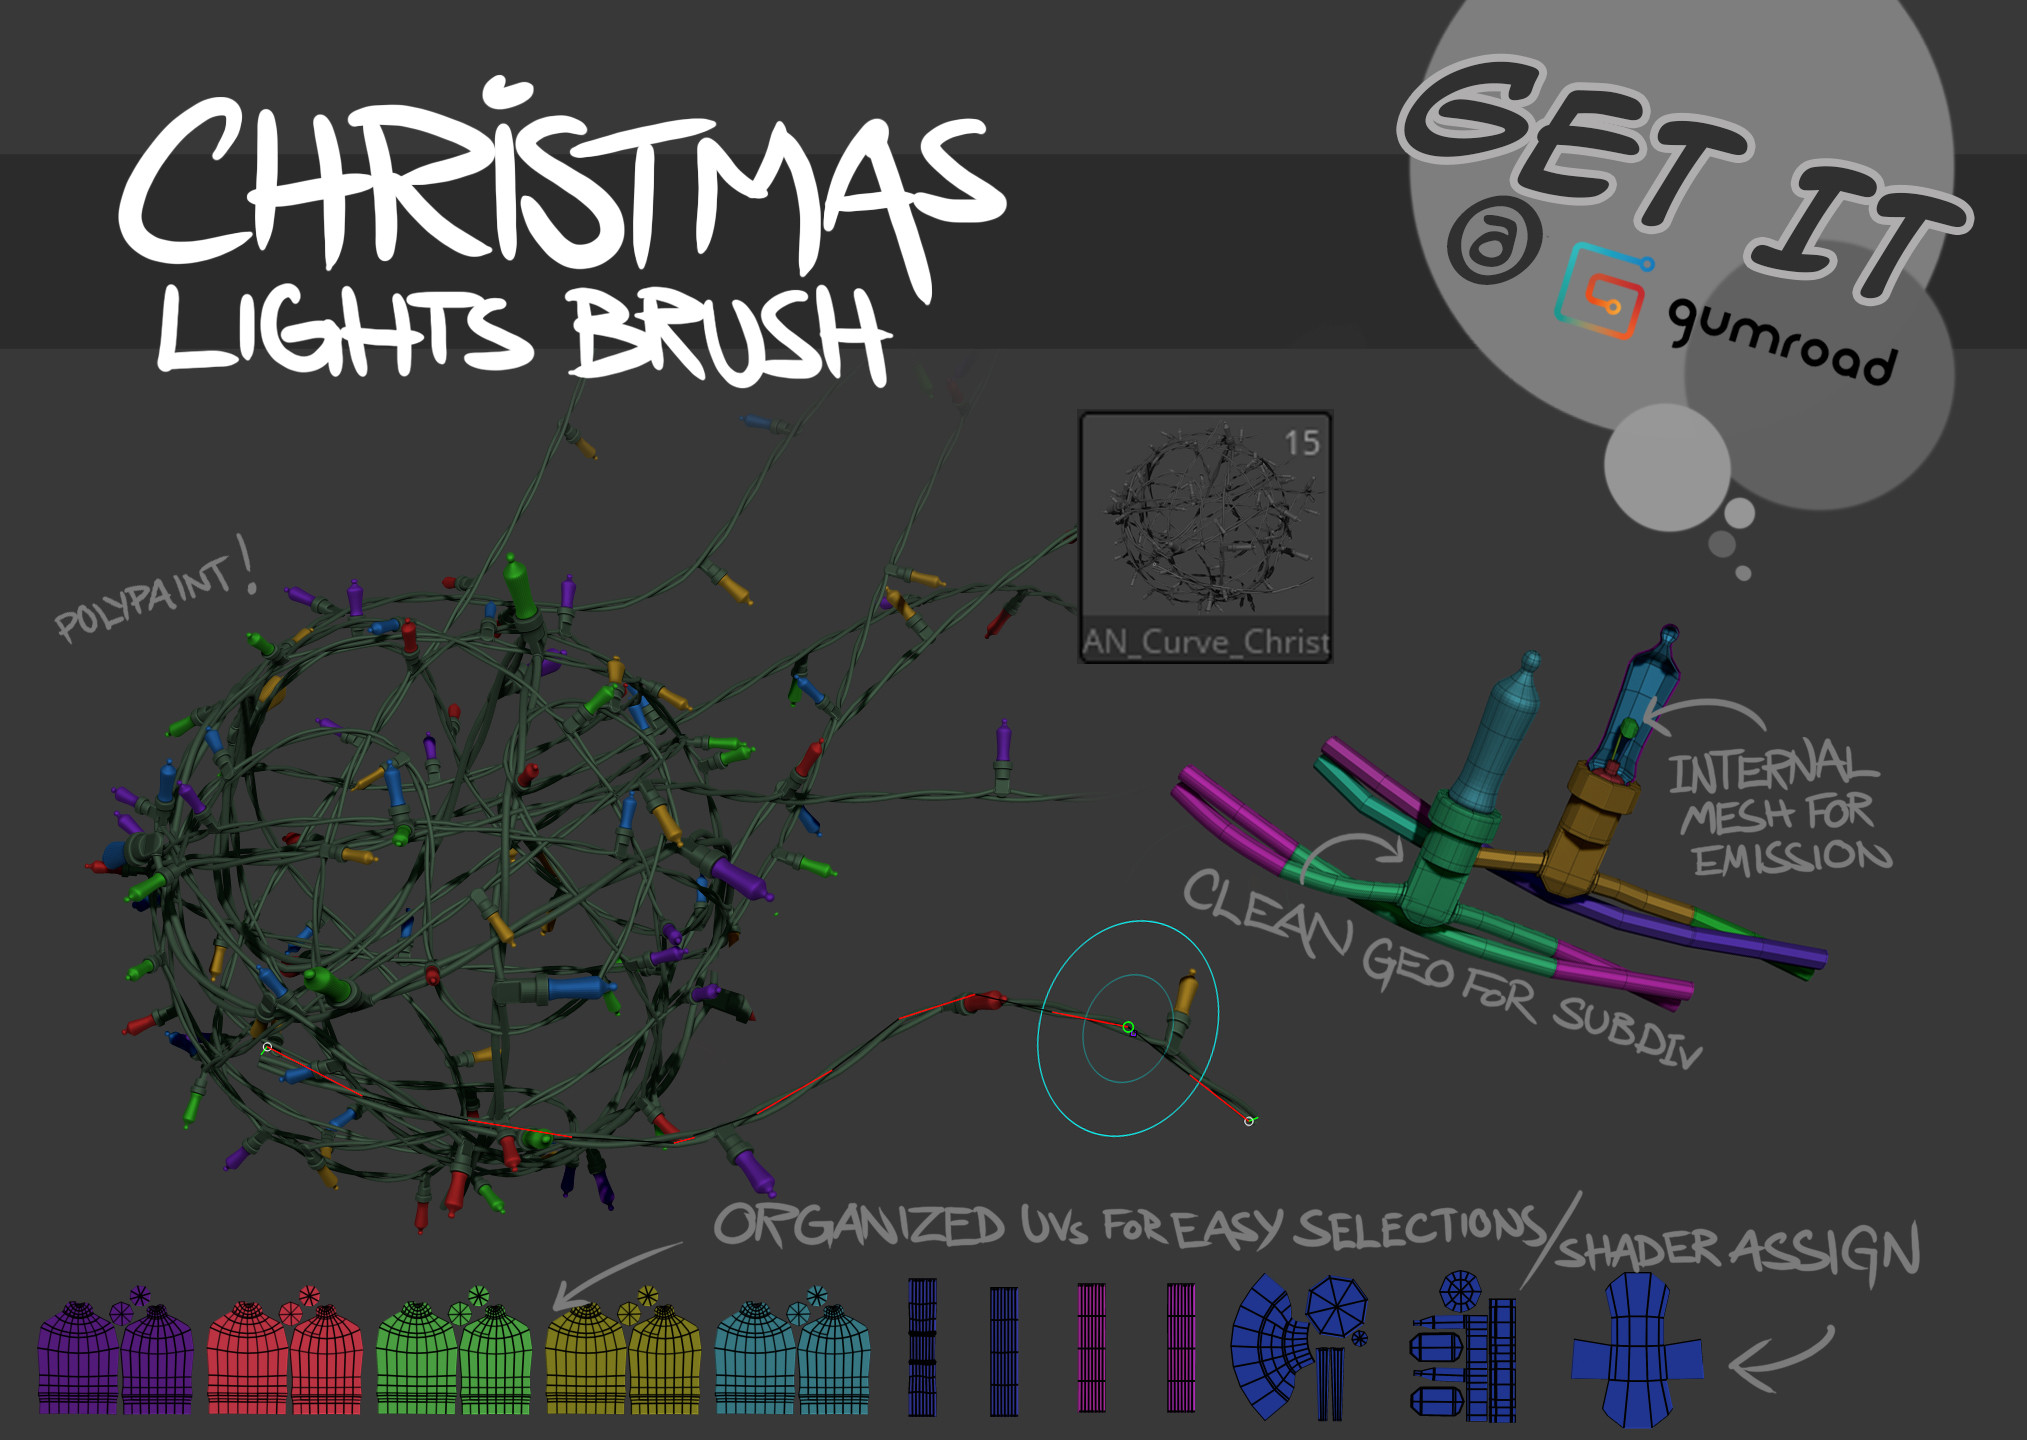 Free Brush Christmas Lights https://gumroad.com/l/ClayBear_BRUSH_ChristmasLights